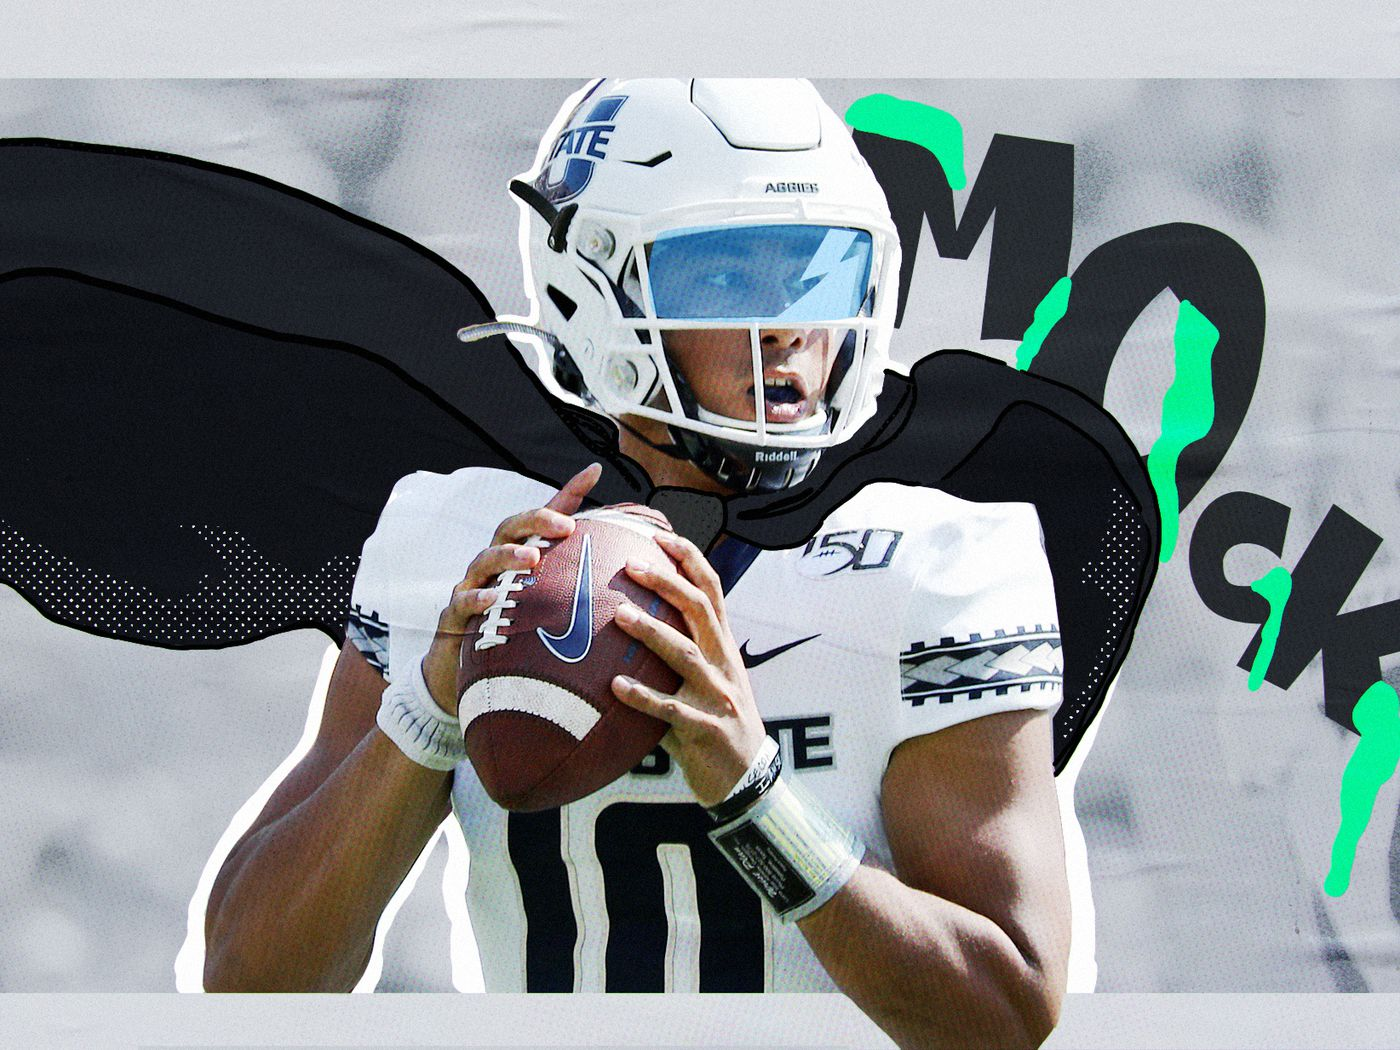 Nfl Mock Draft 2020 Qb Jordan Love Is The Wild Card Of The 1st Round Sbnation Com